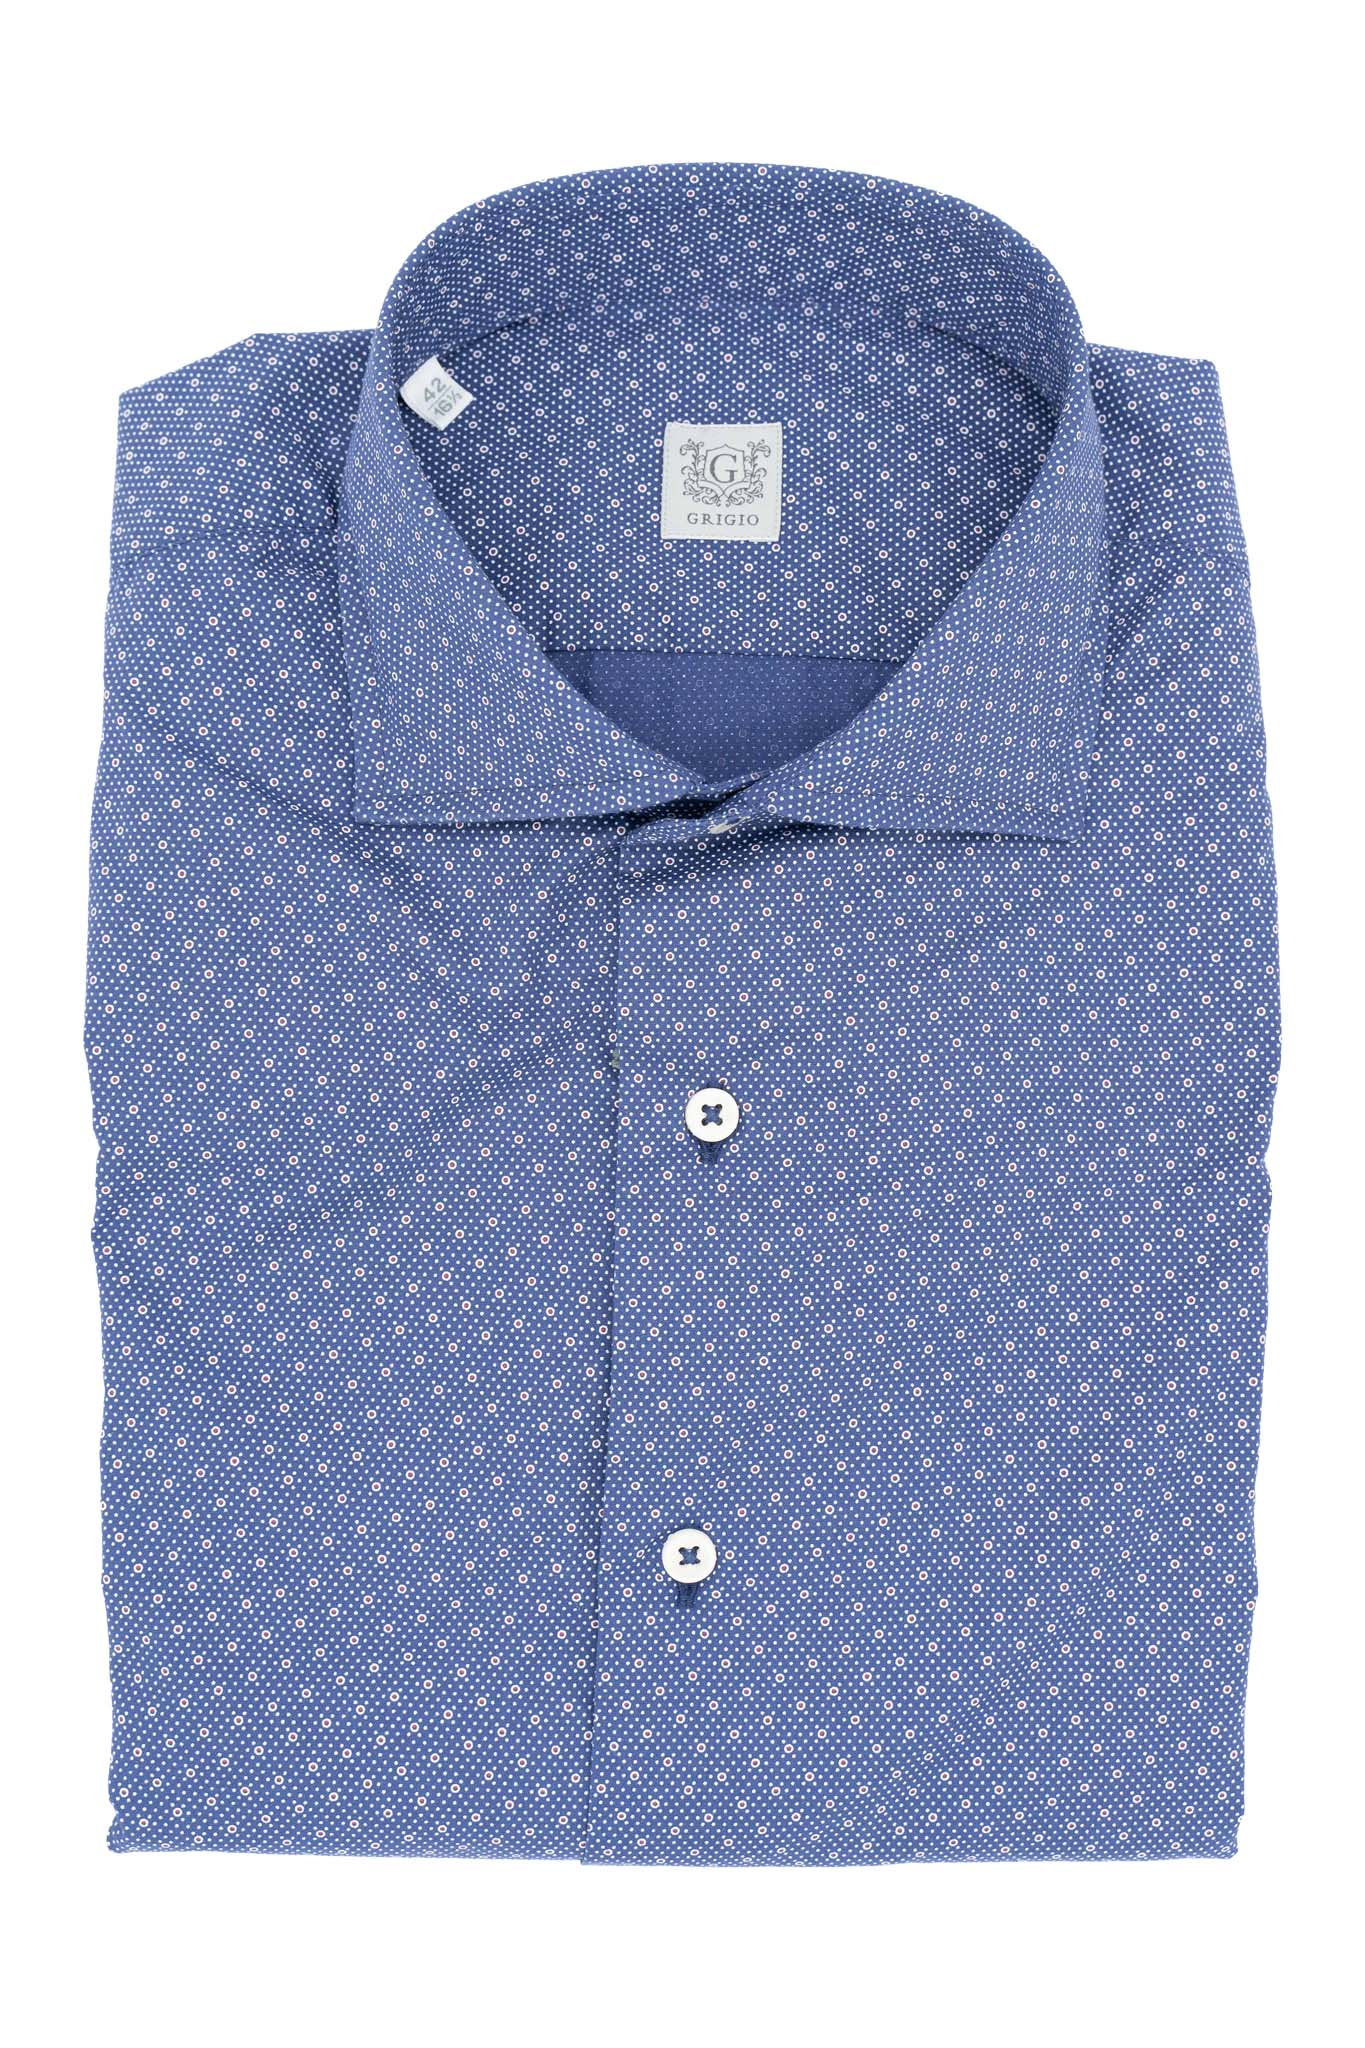 Micro dot blue shirt